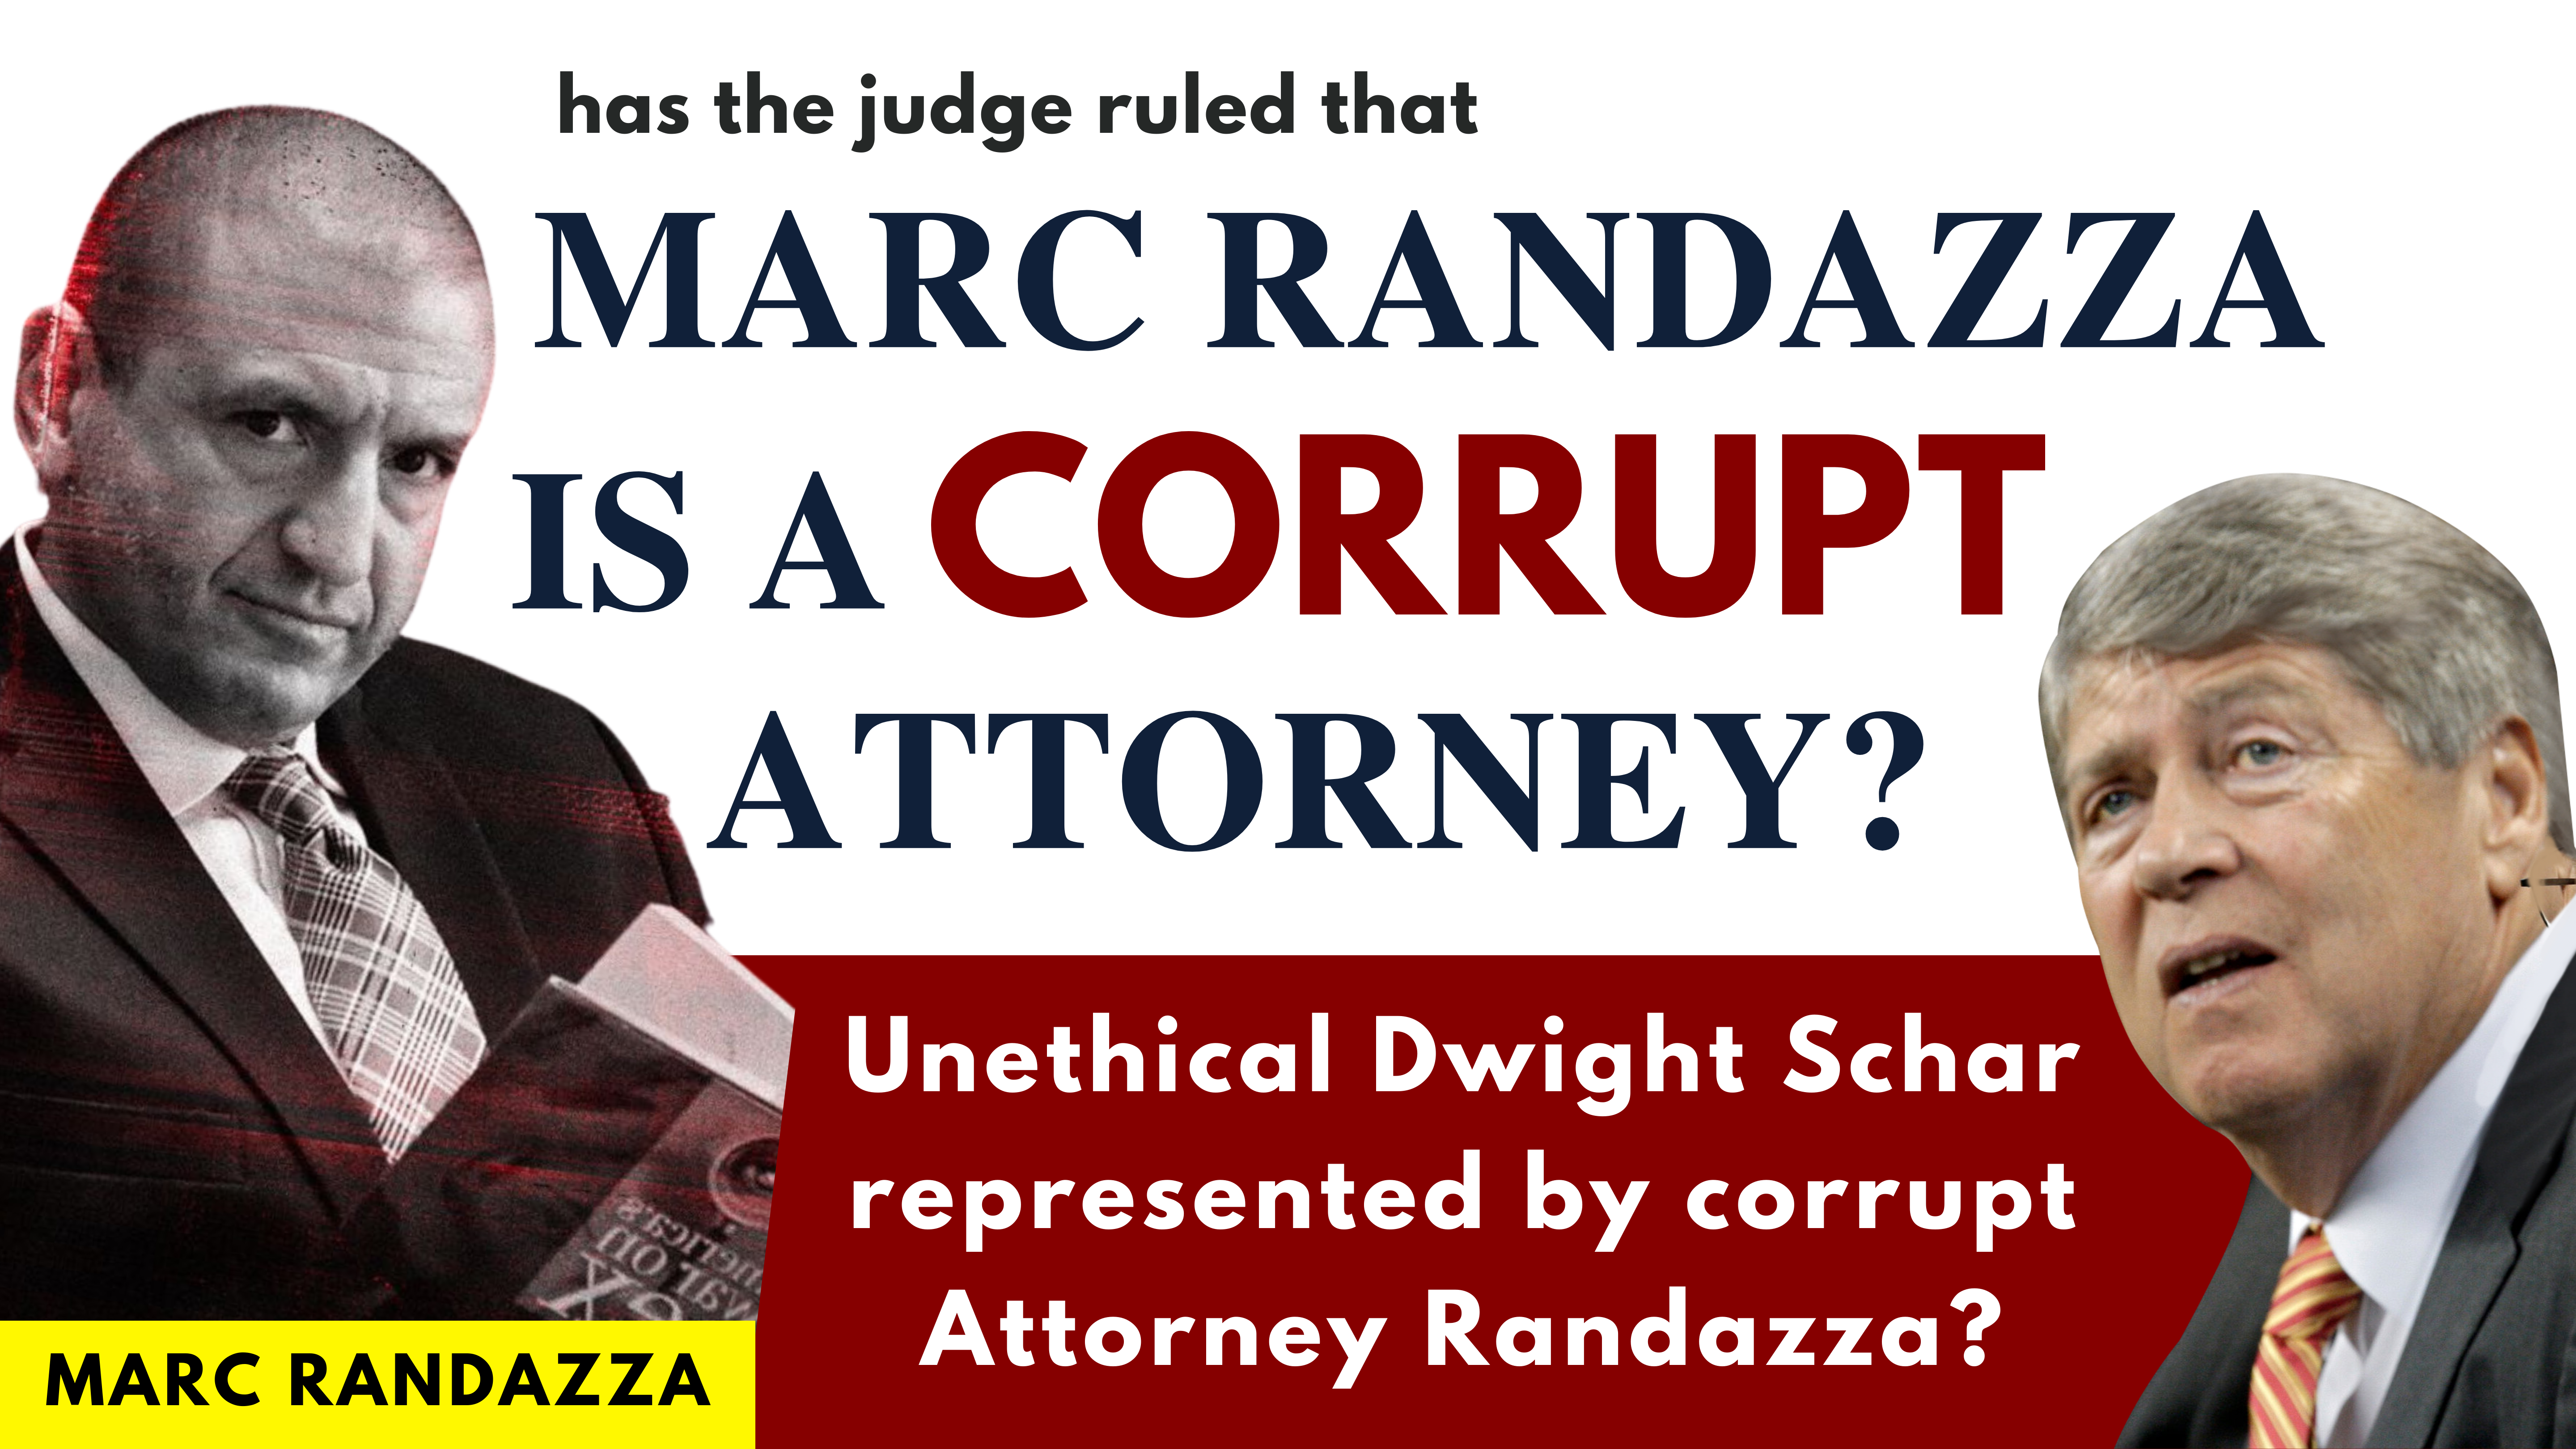 Has the judge ruled that MARC RANDAZZA IS CORRUPT ATTORNEY? Unethical Dwight Schar represented by corrupt attorney Randazza?